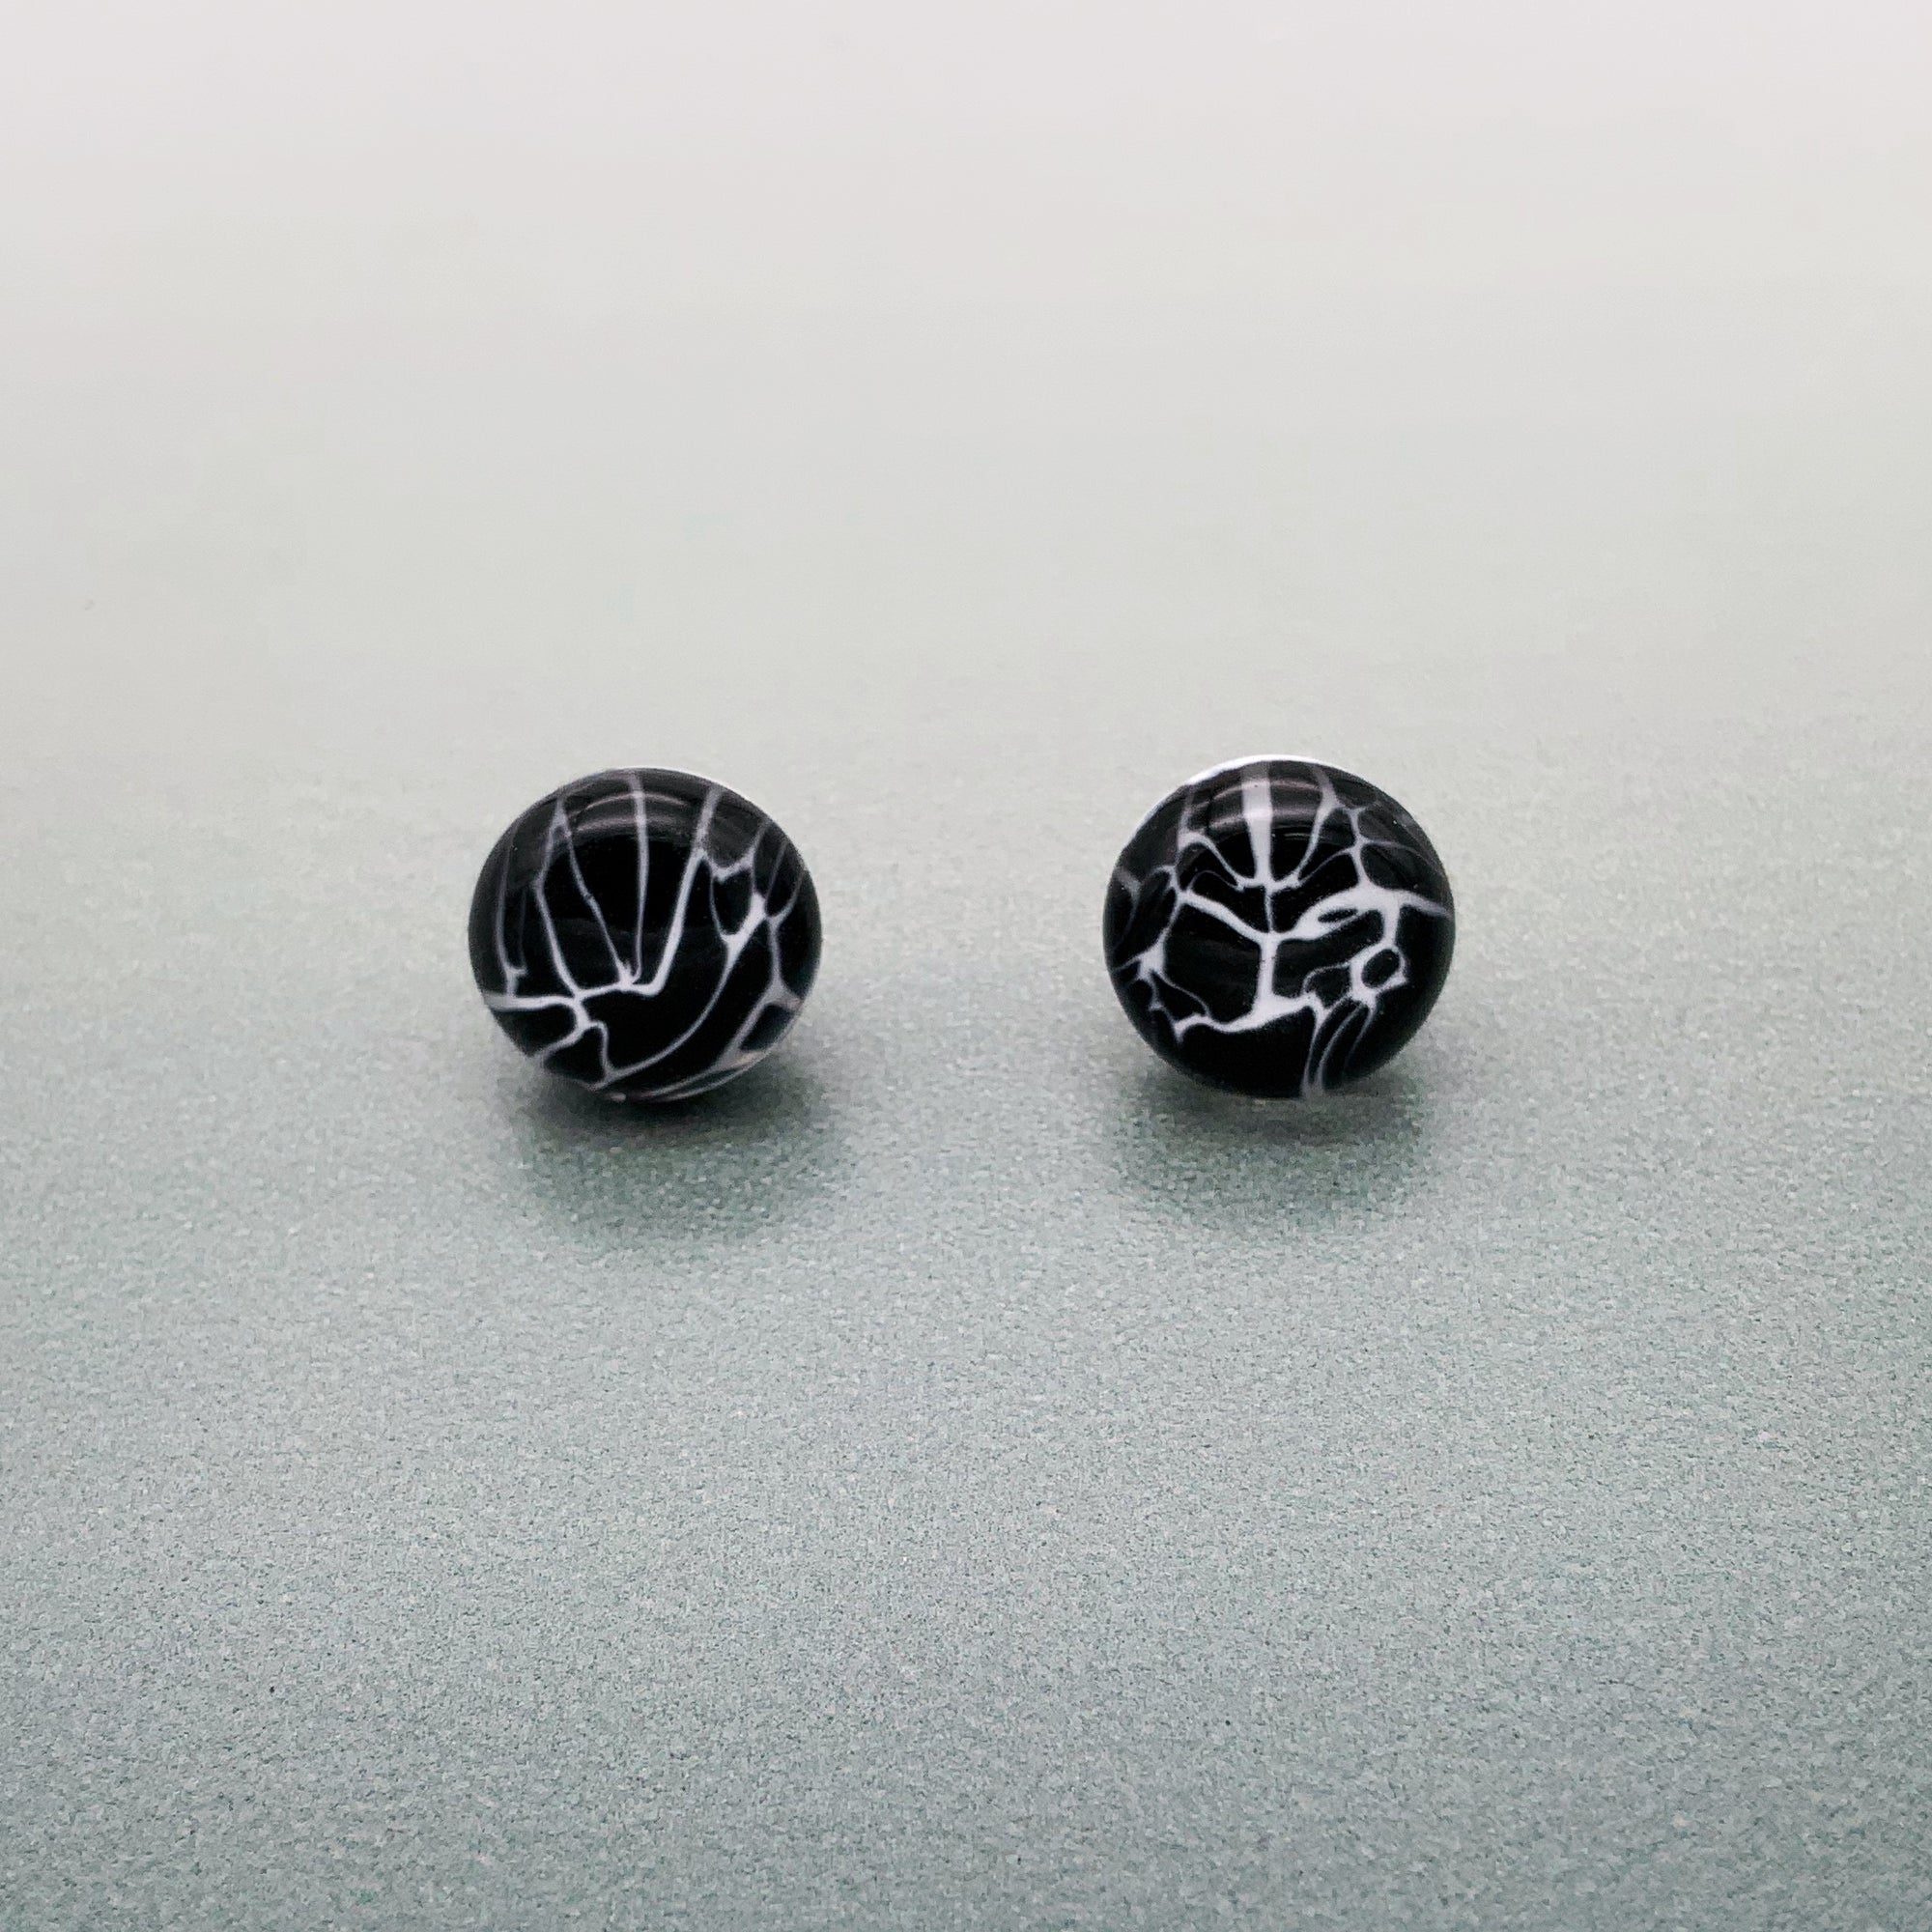 Marmo glass stud earrings - Black and white marble